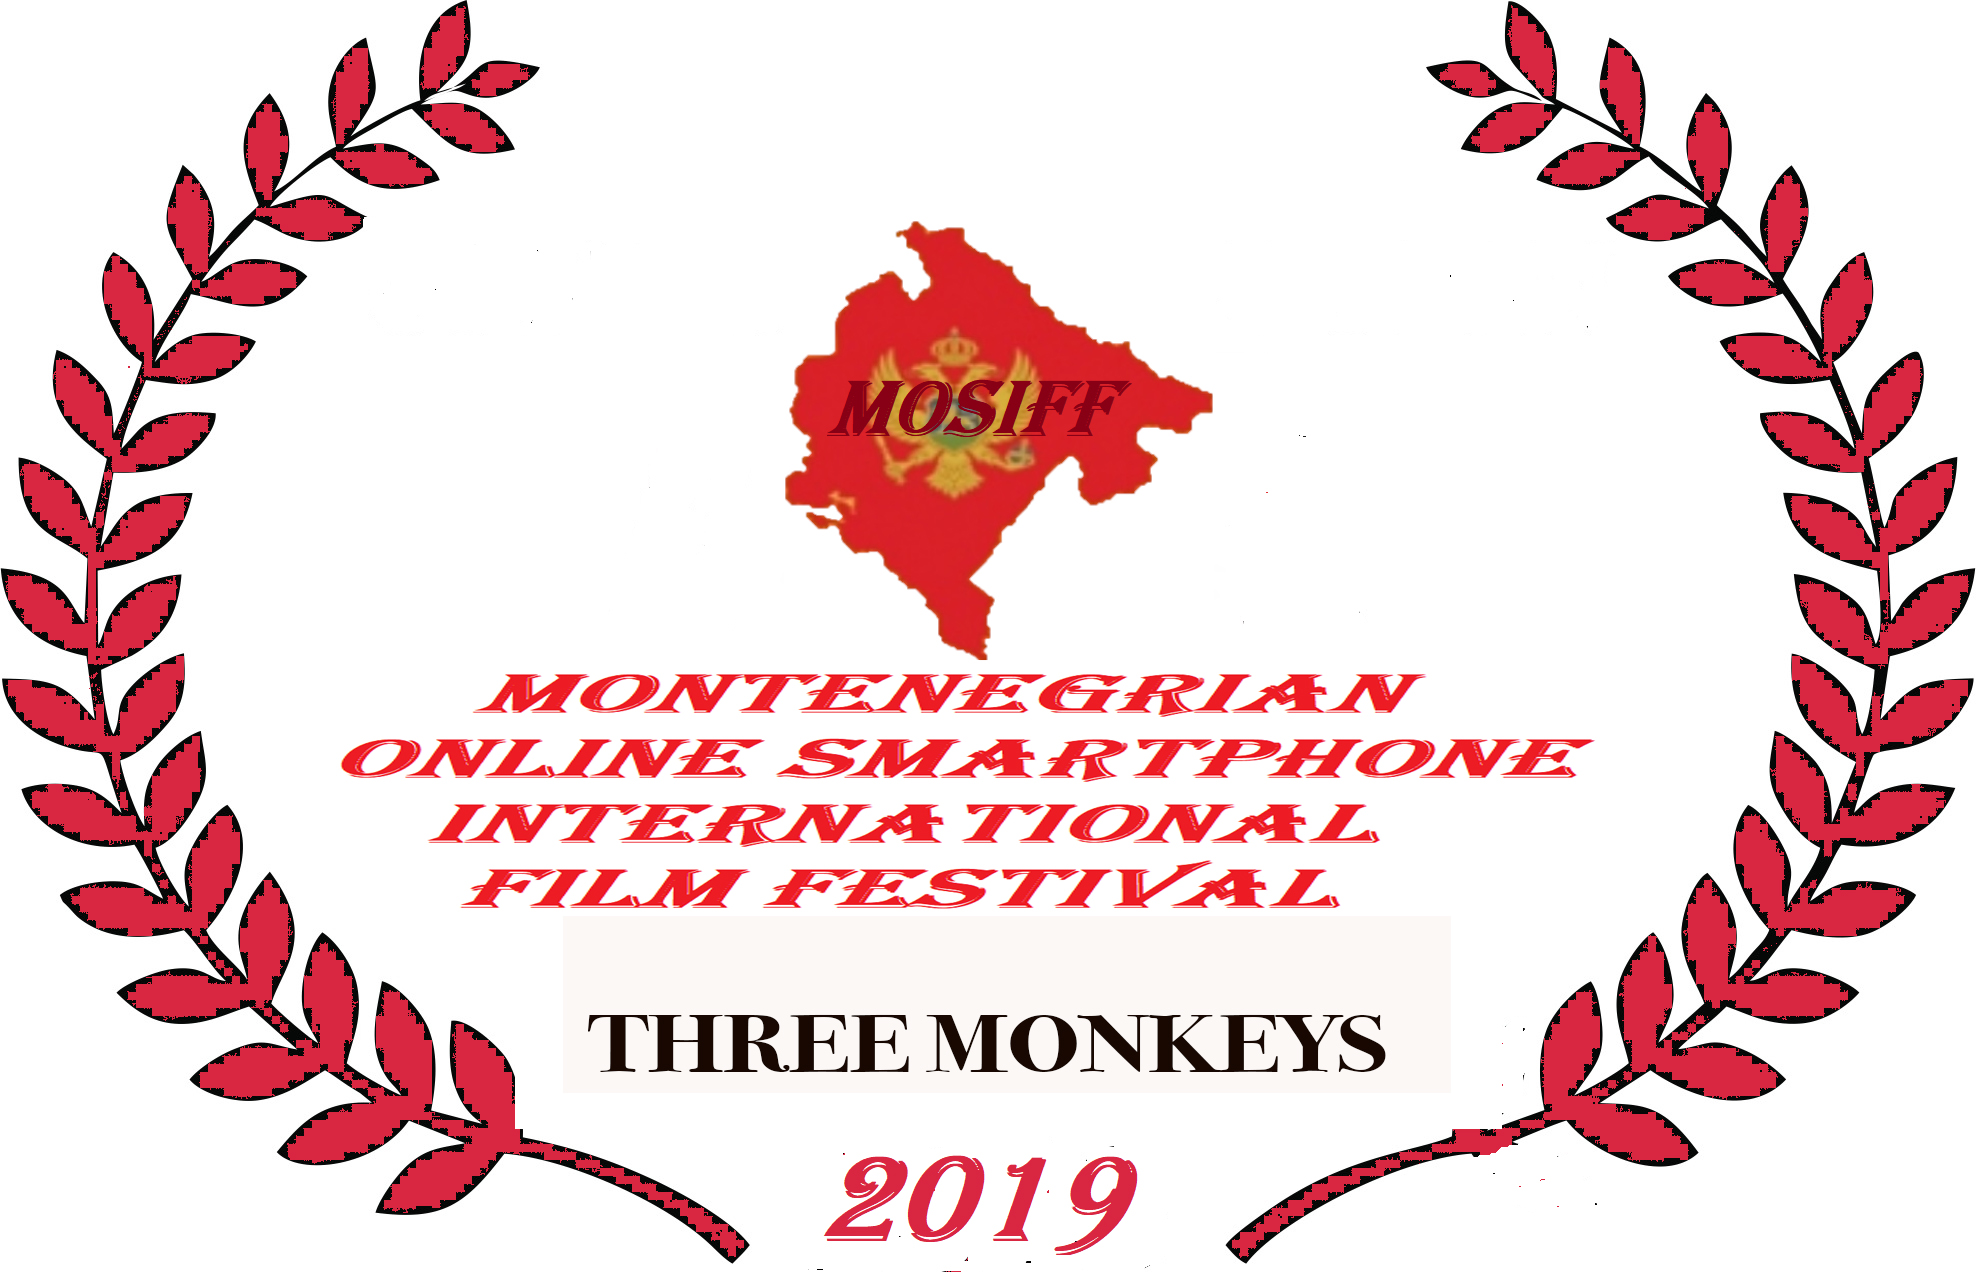 THE MONKIES2019